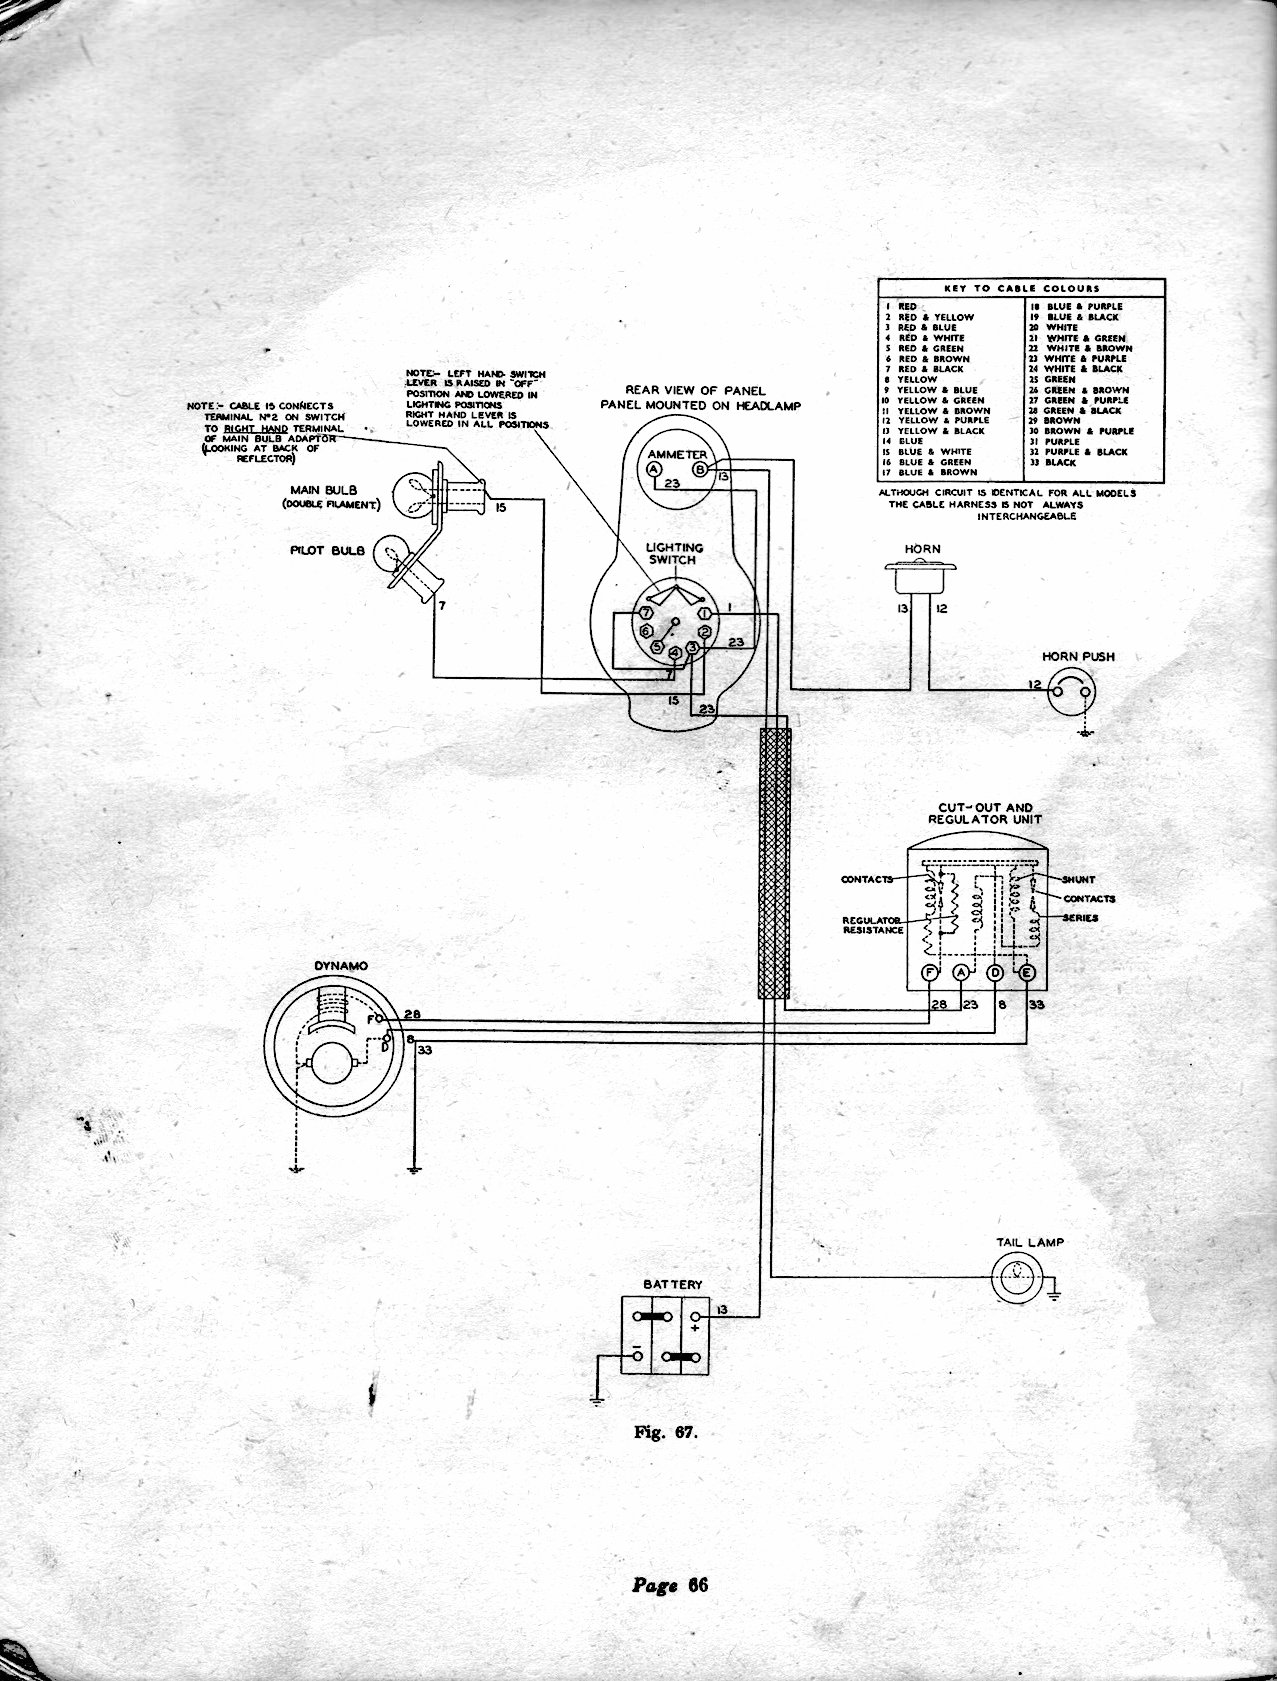 1941 to 1944 electrical system bsa m20 wiring diagram at gsmx.co